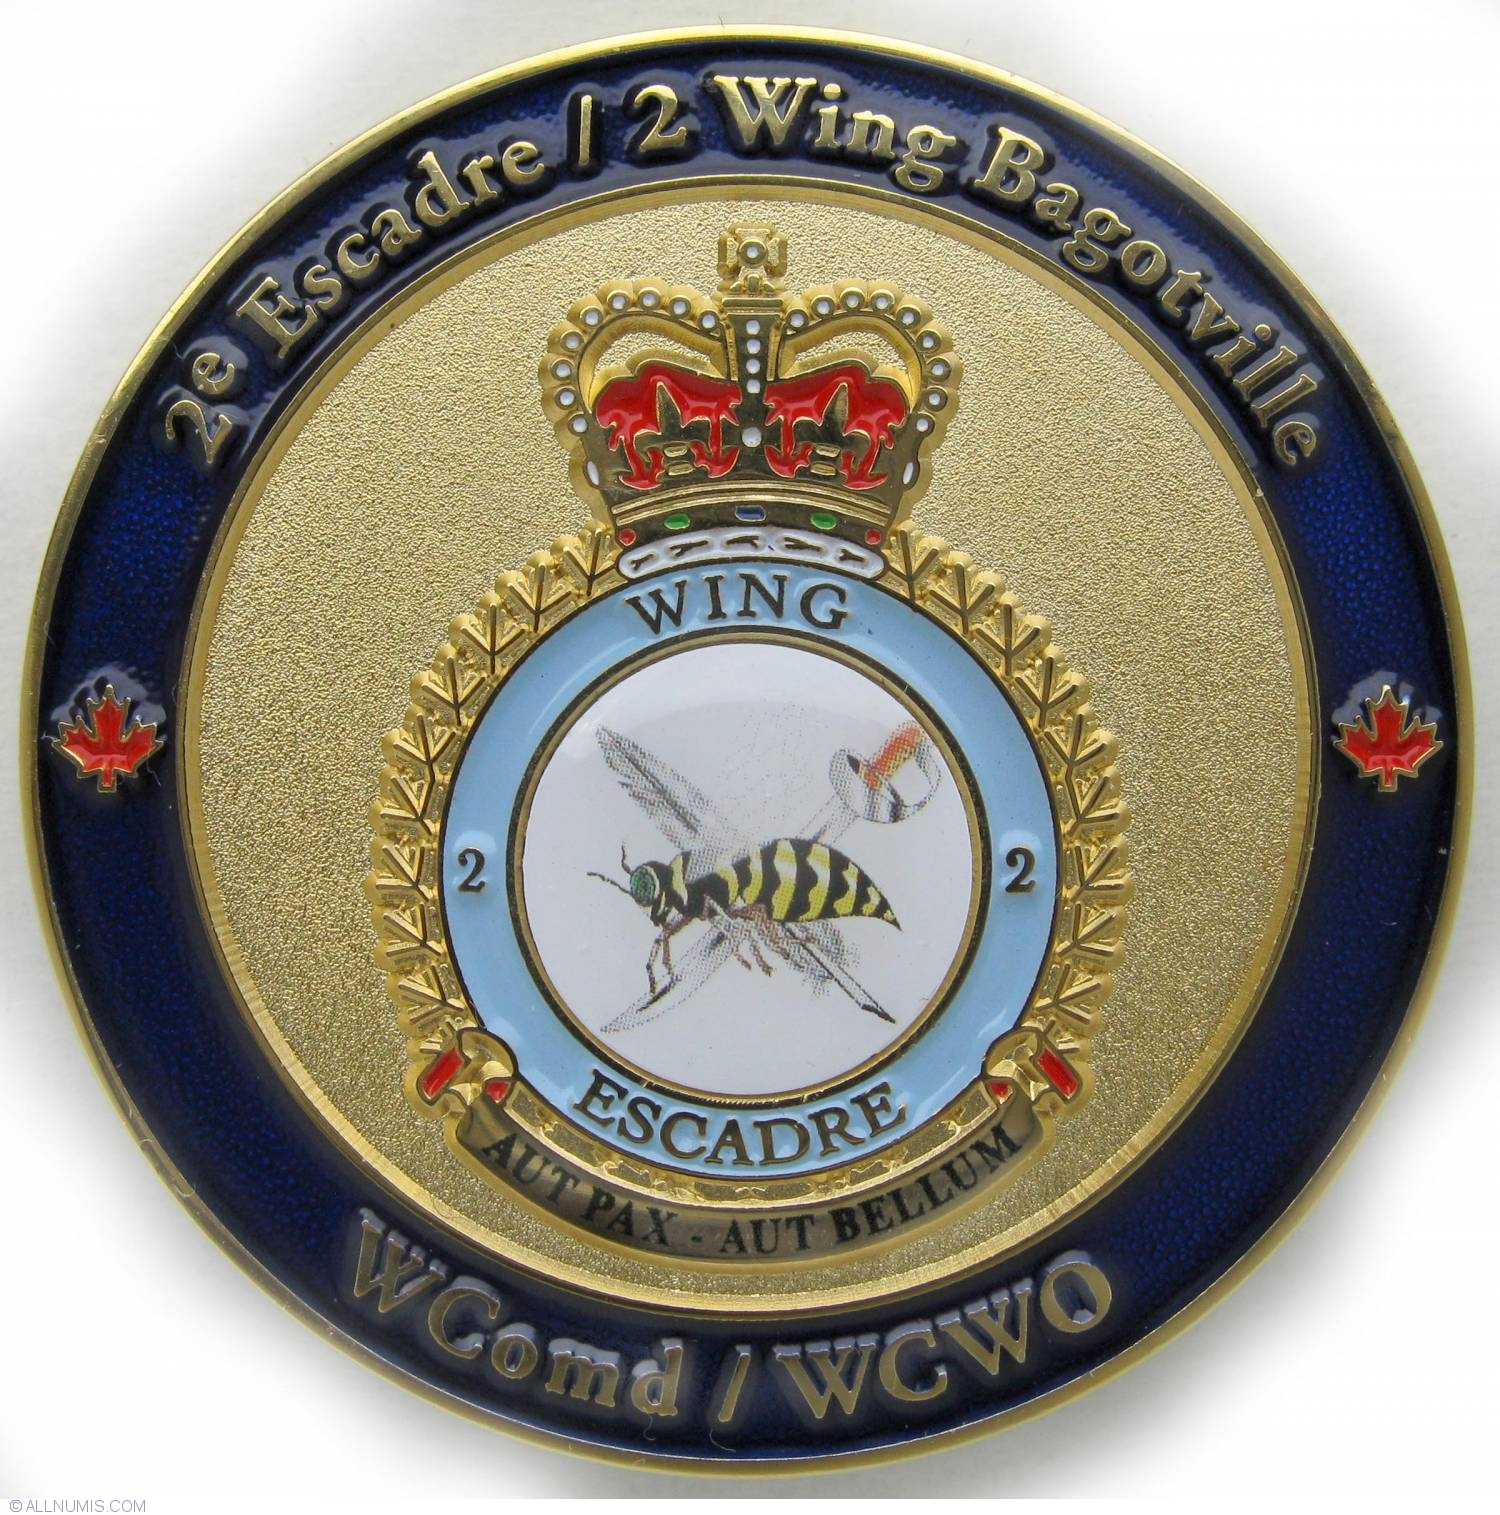 bagotville personals How is bagotville air cadet summer training centre (canada) abbreviated bacstc stands for bagotville air cadet summer training centre (canada) bacstc is defined as bagotville air cadet summer training centre (canada) very rarely.